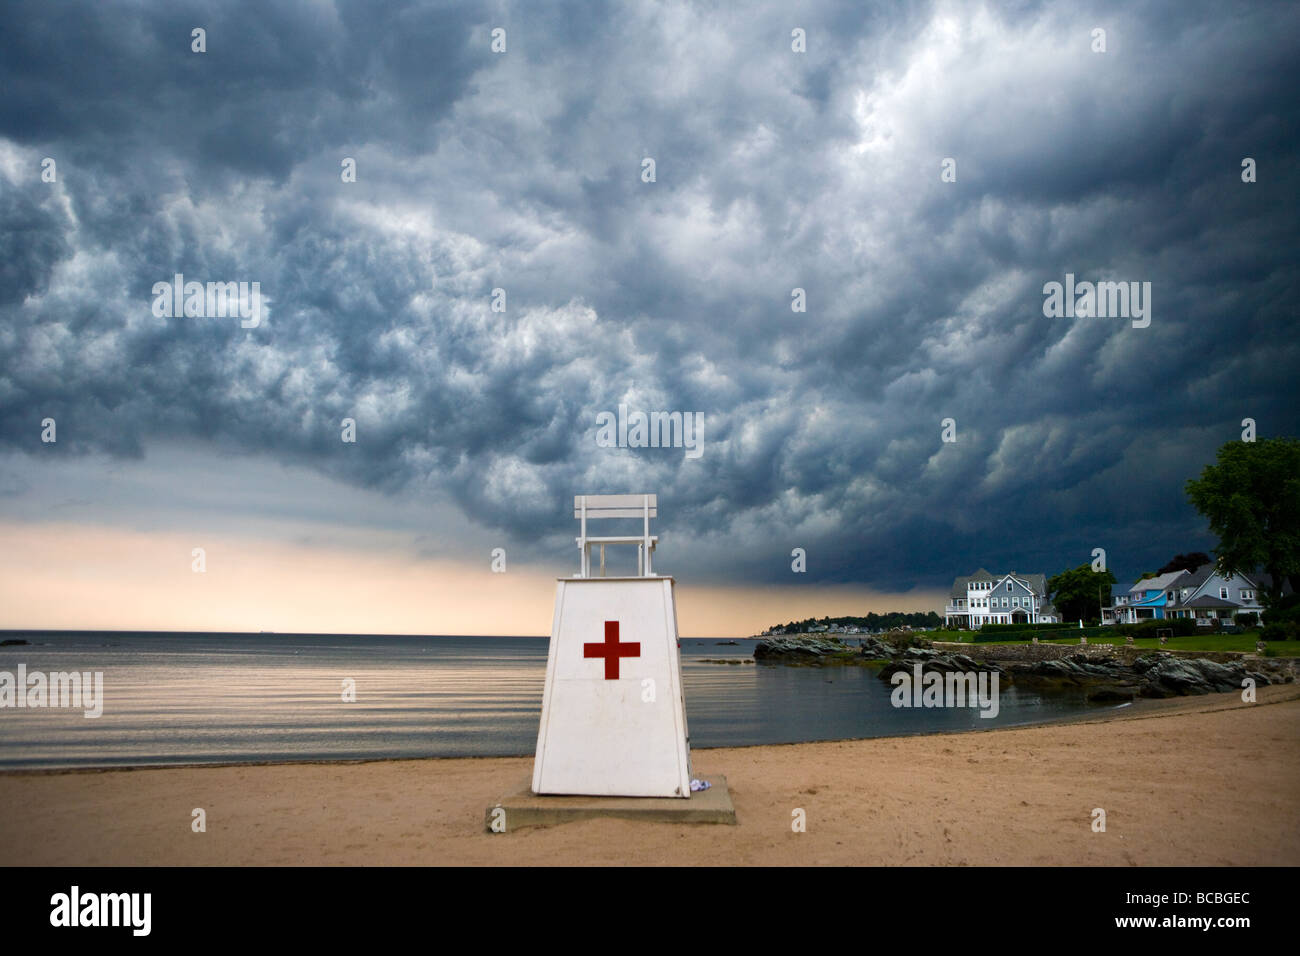 Une tempête au Milford Michigan USA Photo Stock